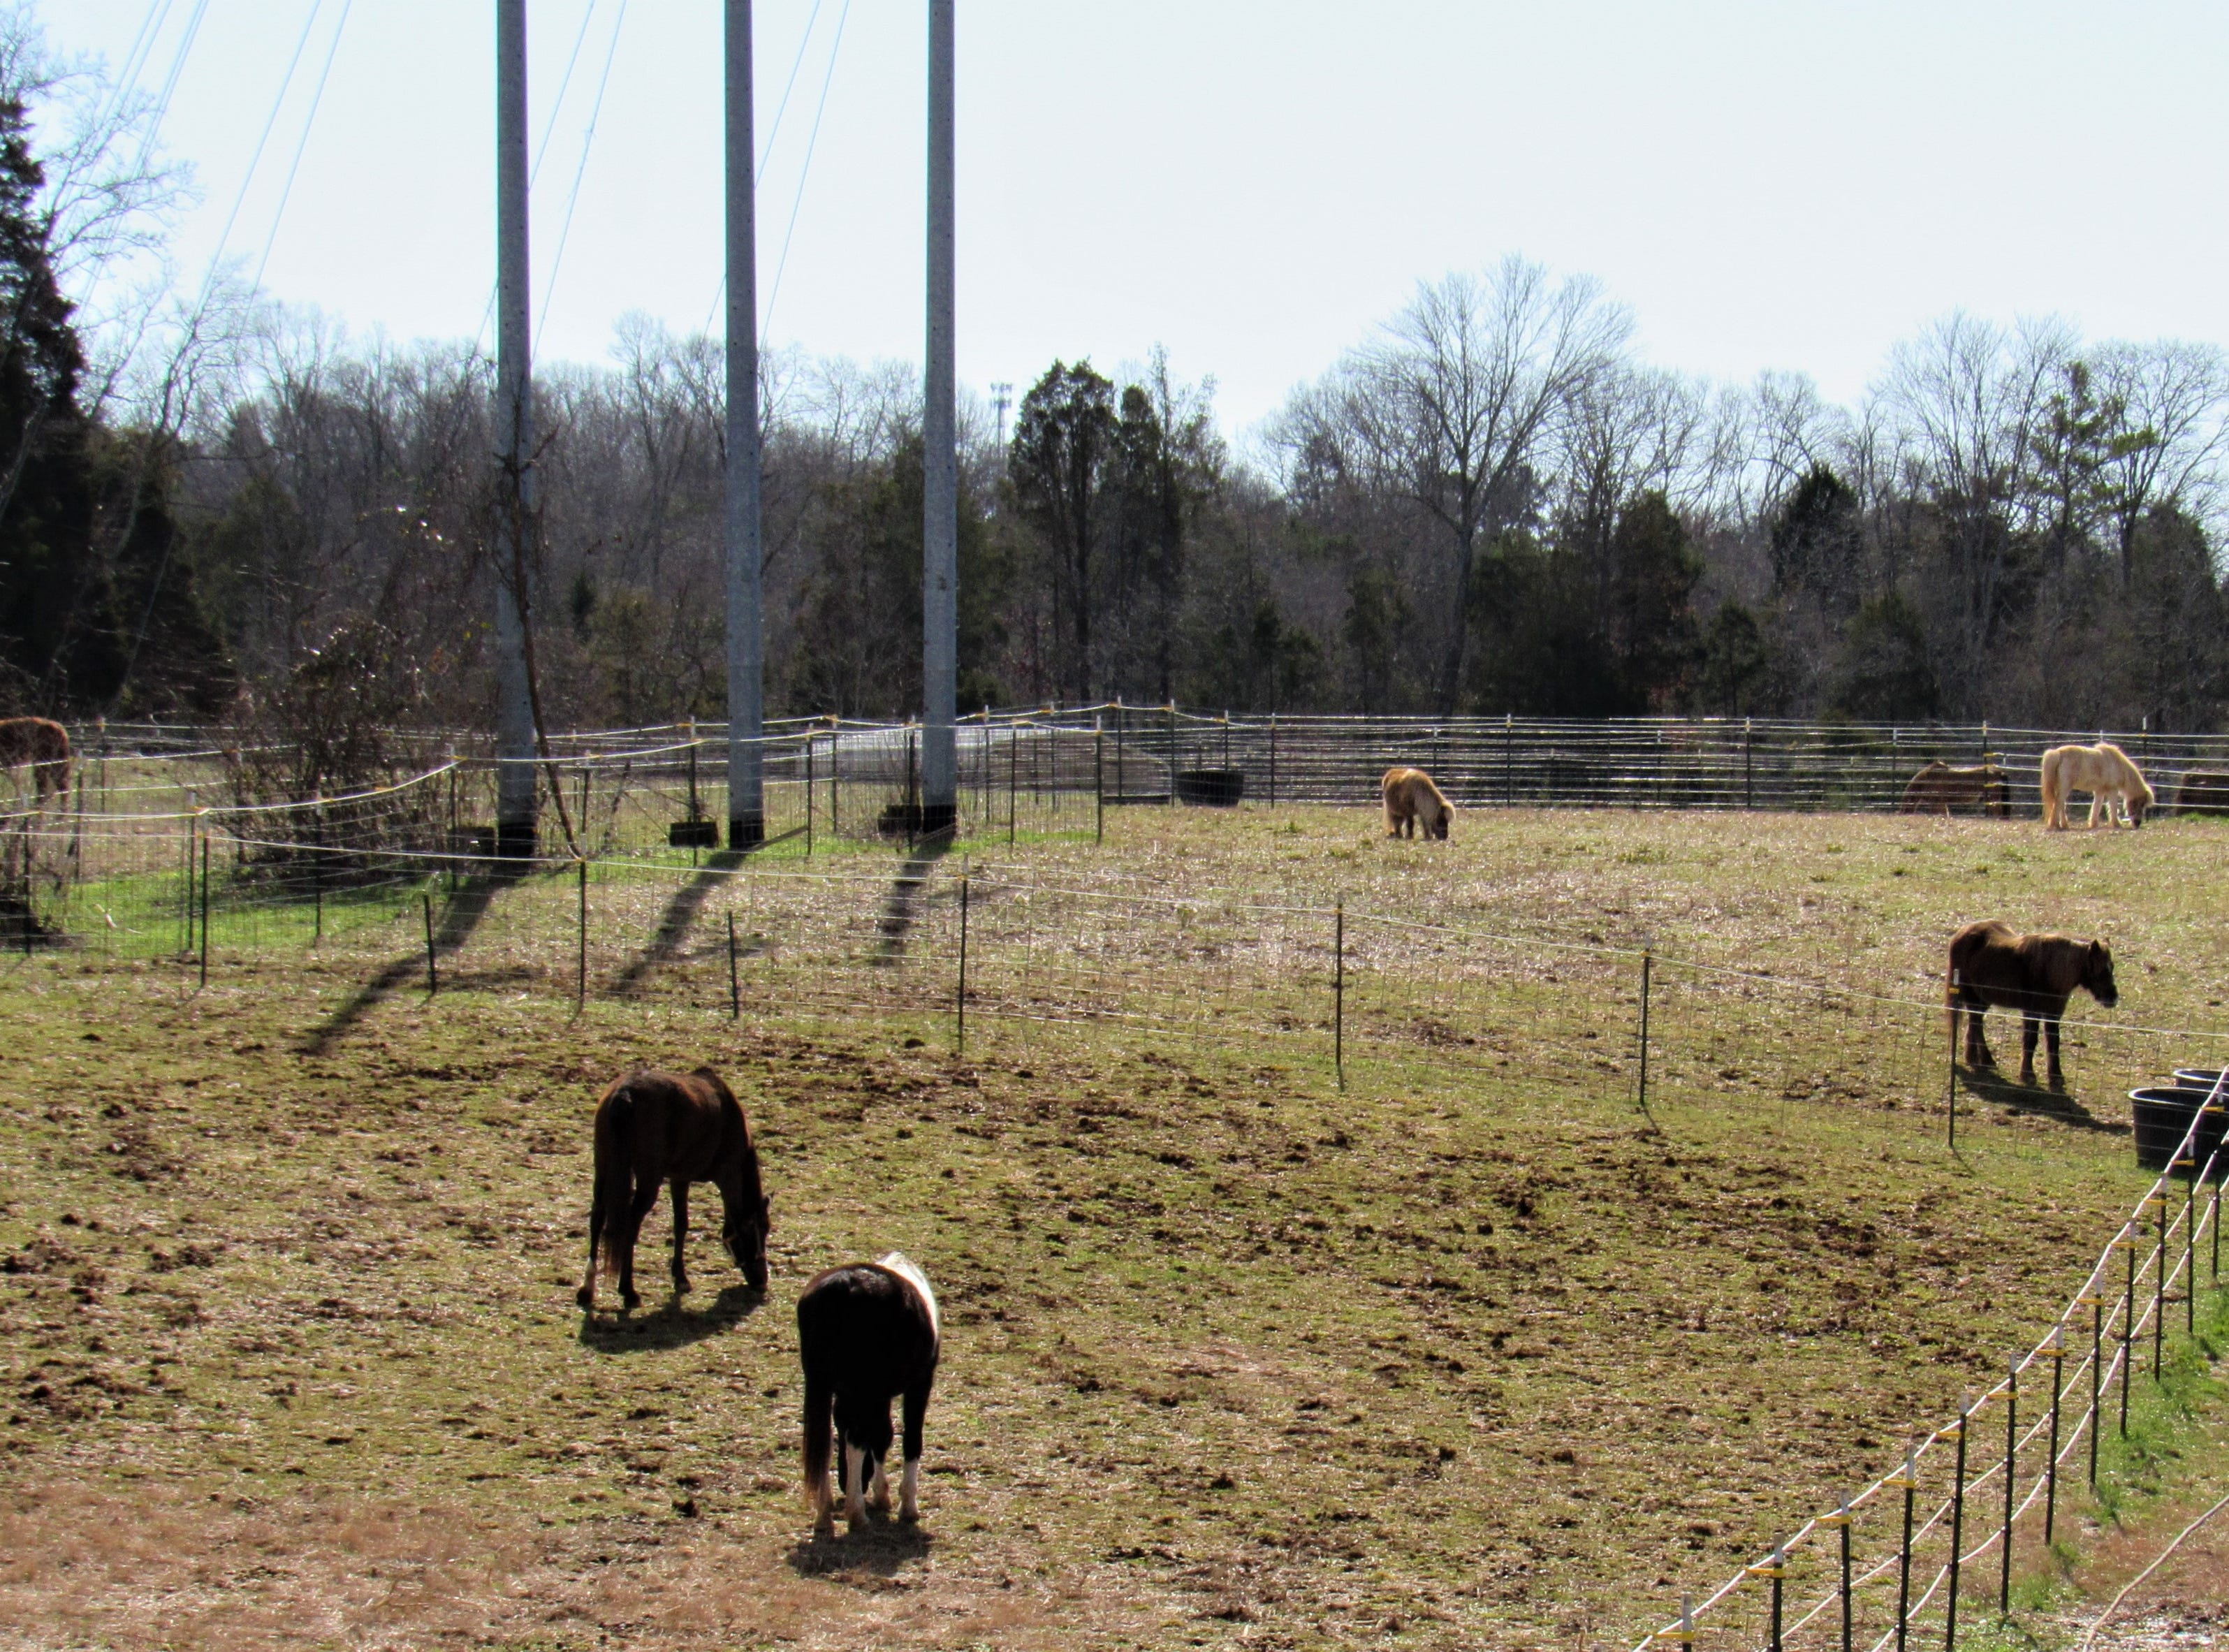 Horses are turned out to pasture daily, weather permitting.